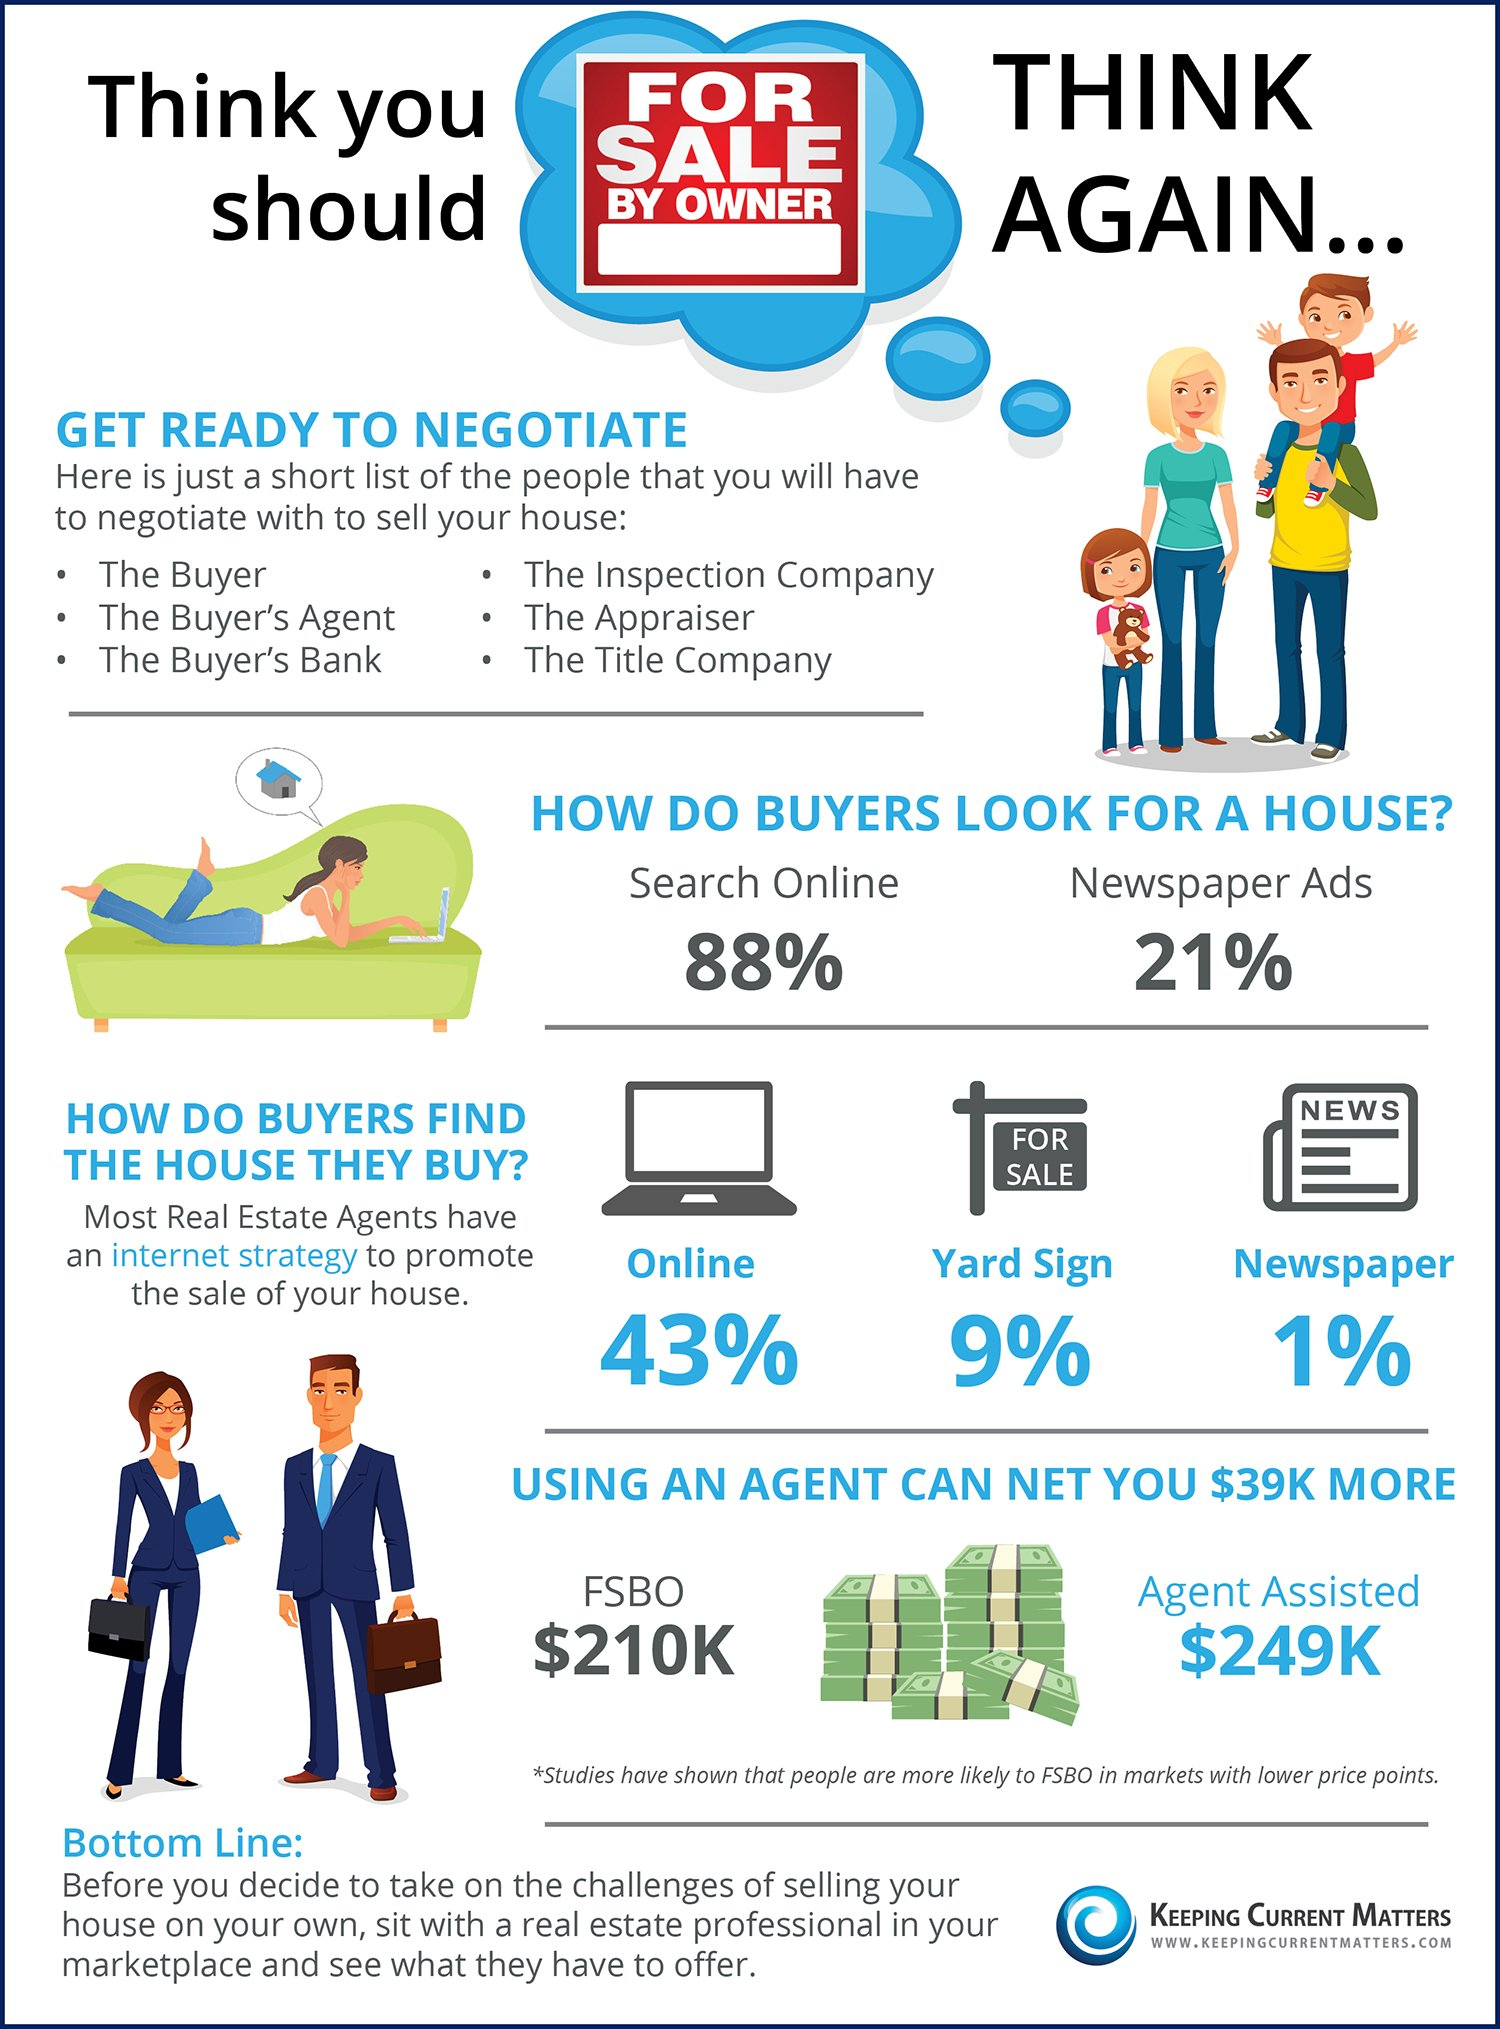 Thinking You Should FSBO? Think Again [INFOGRAPHIC] | Keeping Current Matters